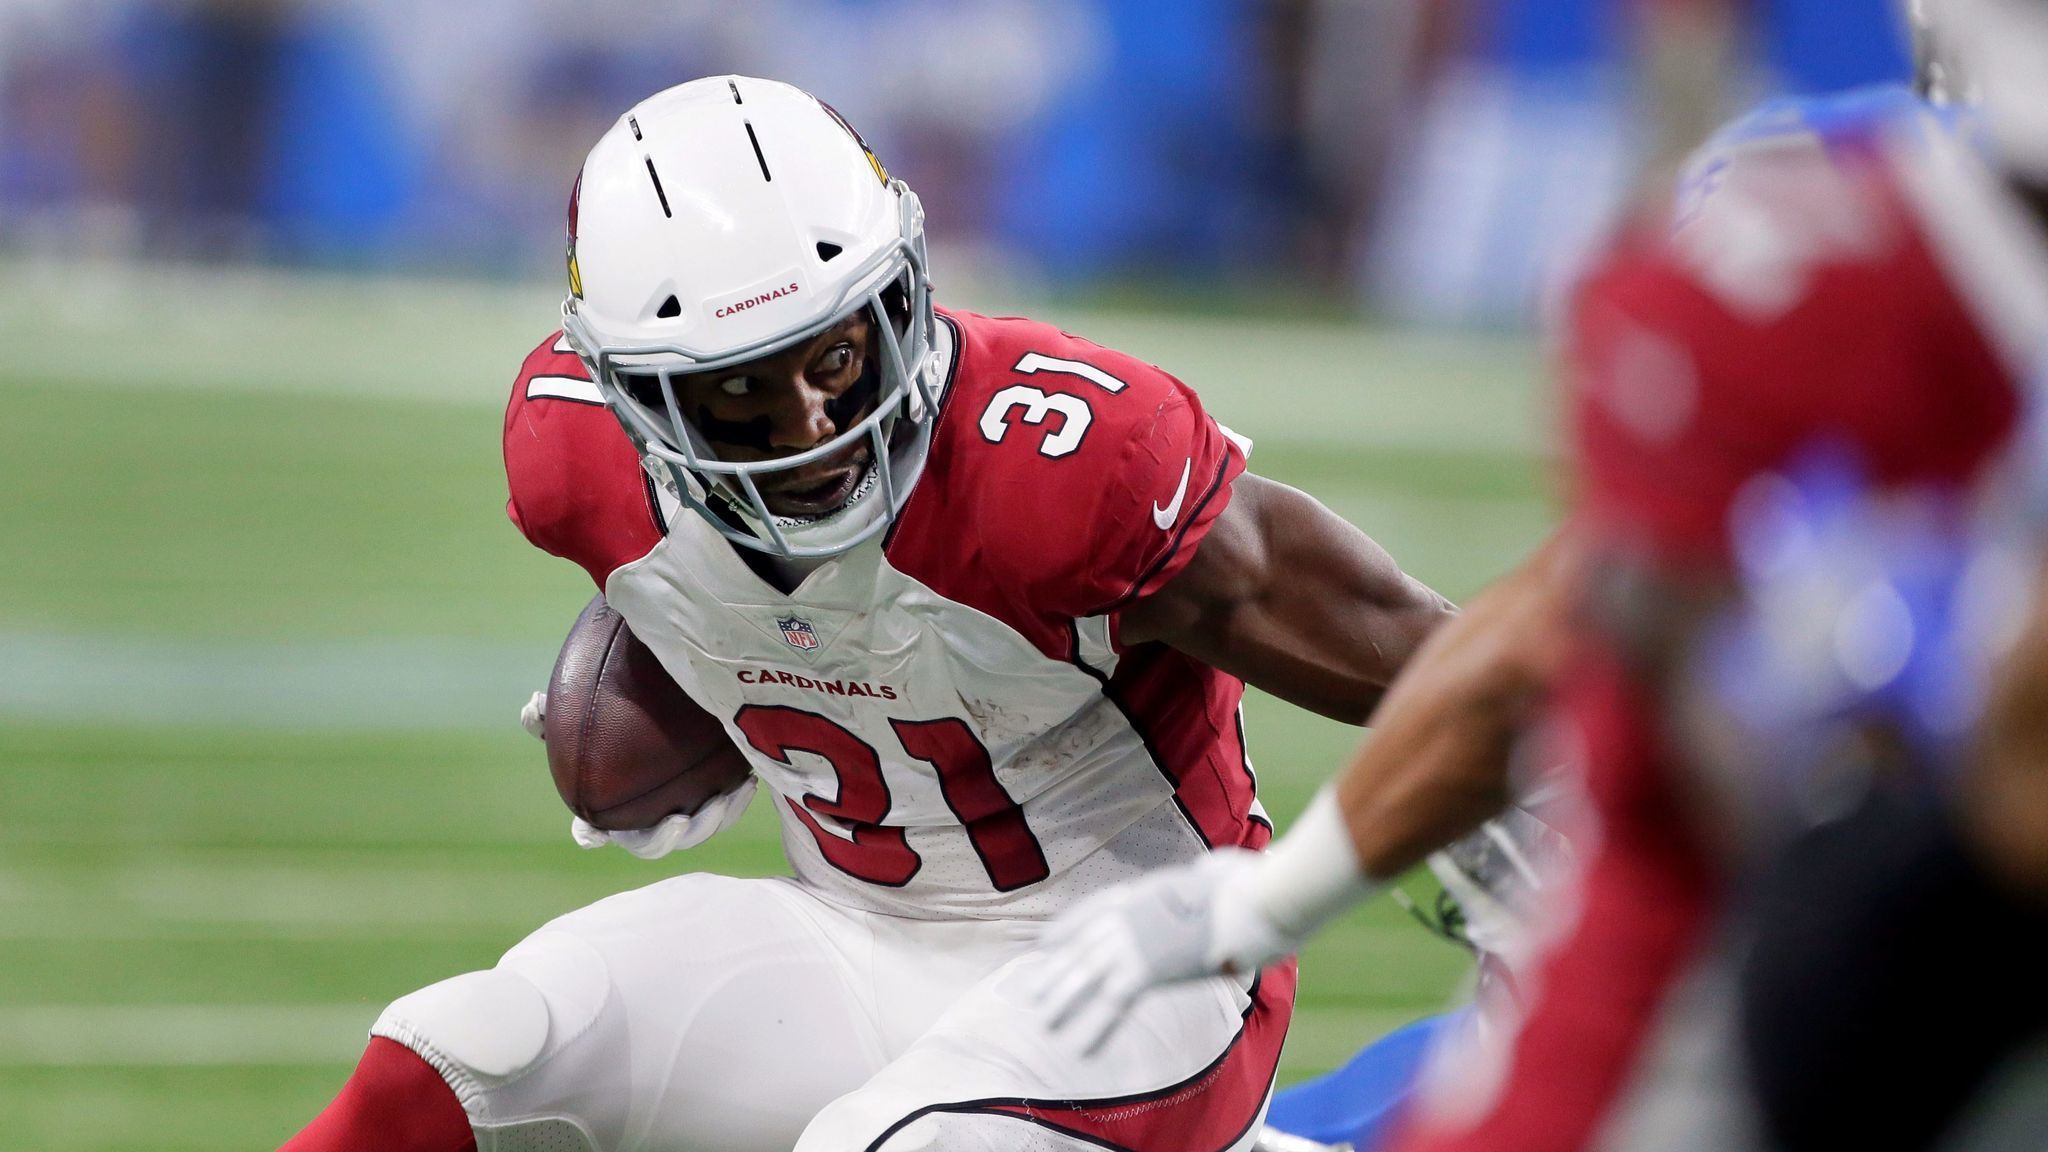 David Johnson on track to help Cardinals and fantasy owners